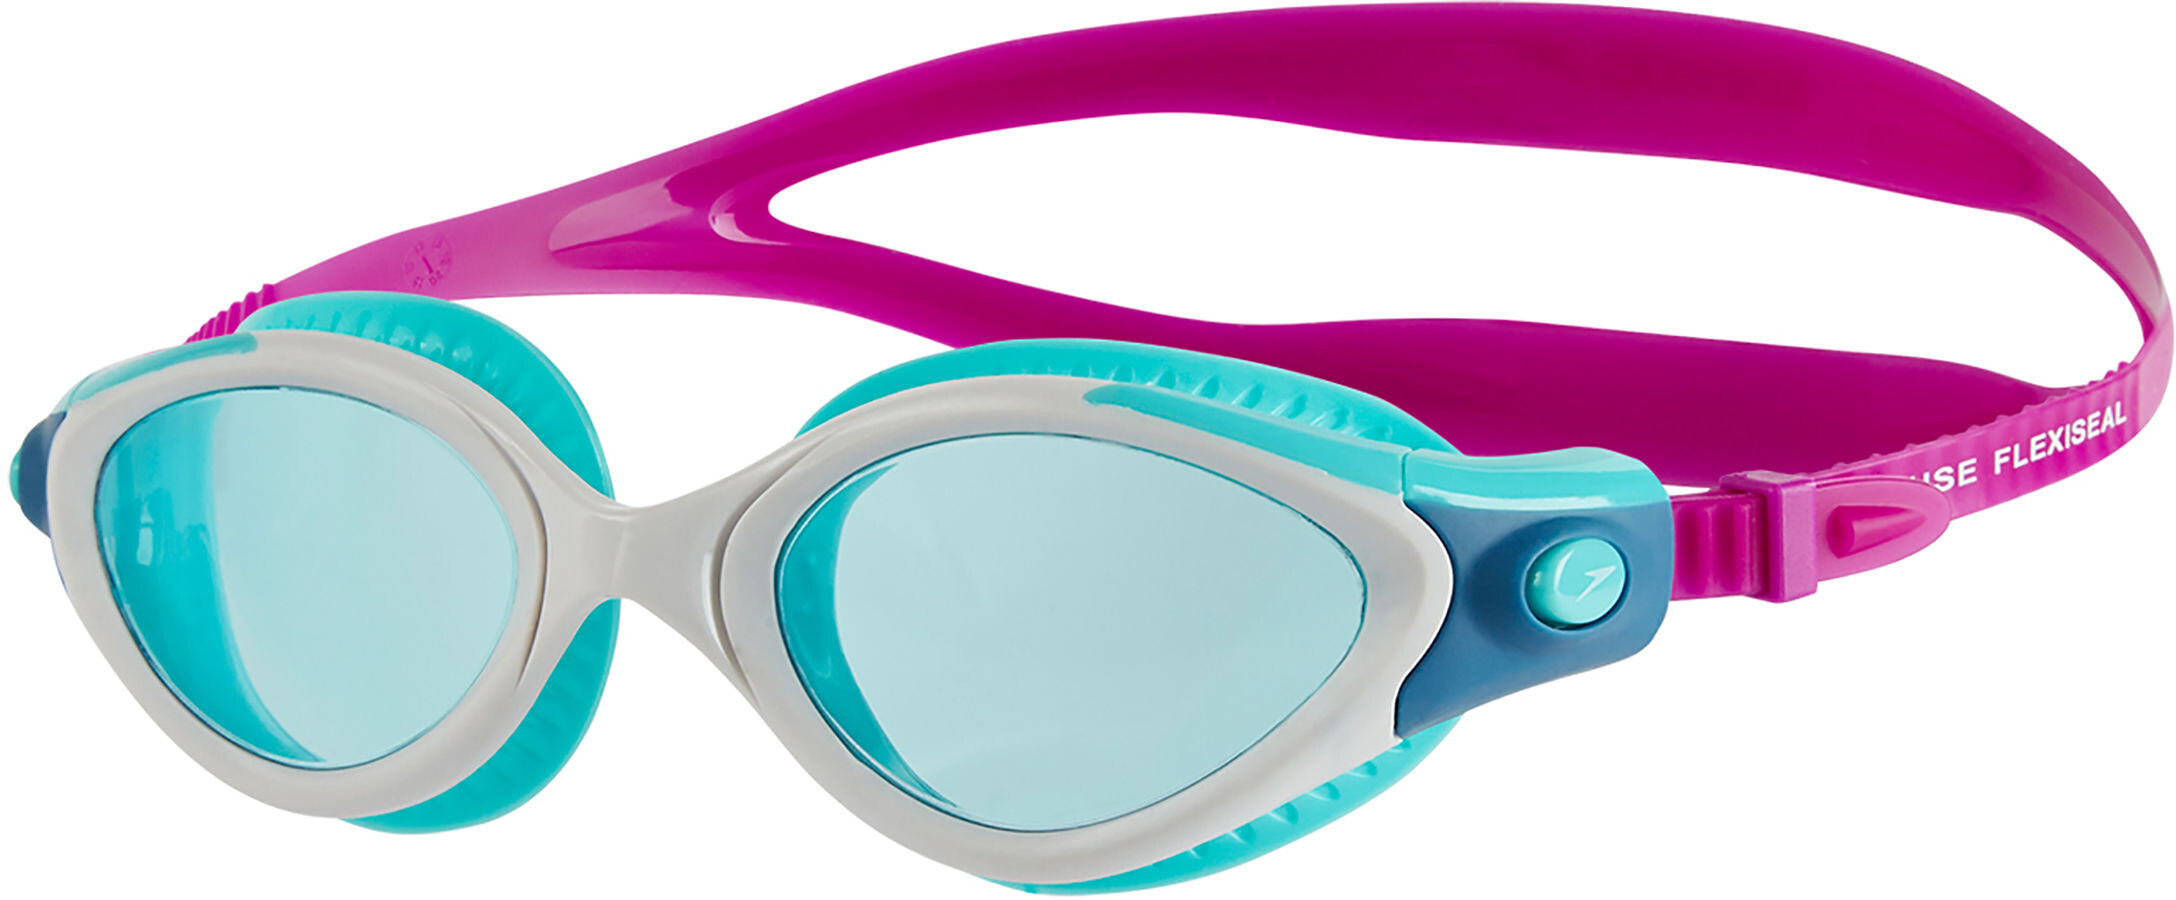 speedo W s Futura Biofuse Flexiseal Goggle Diva White Peppermint ... 61a40fbe3af08